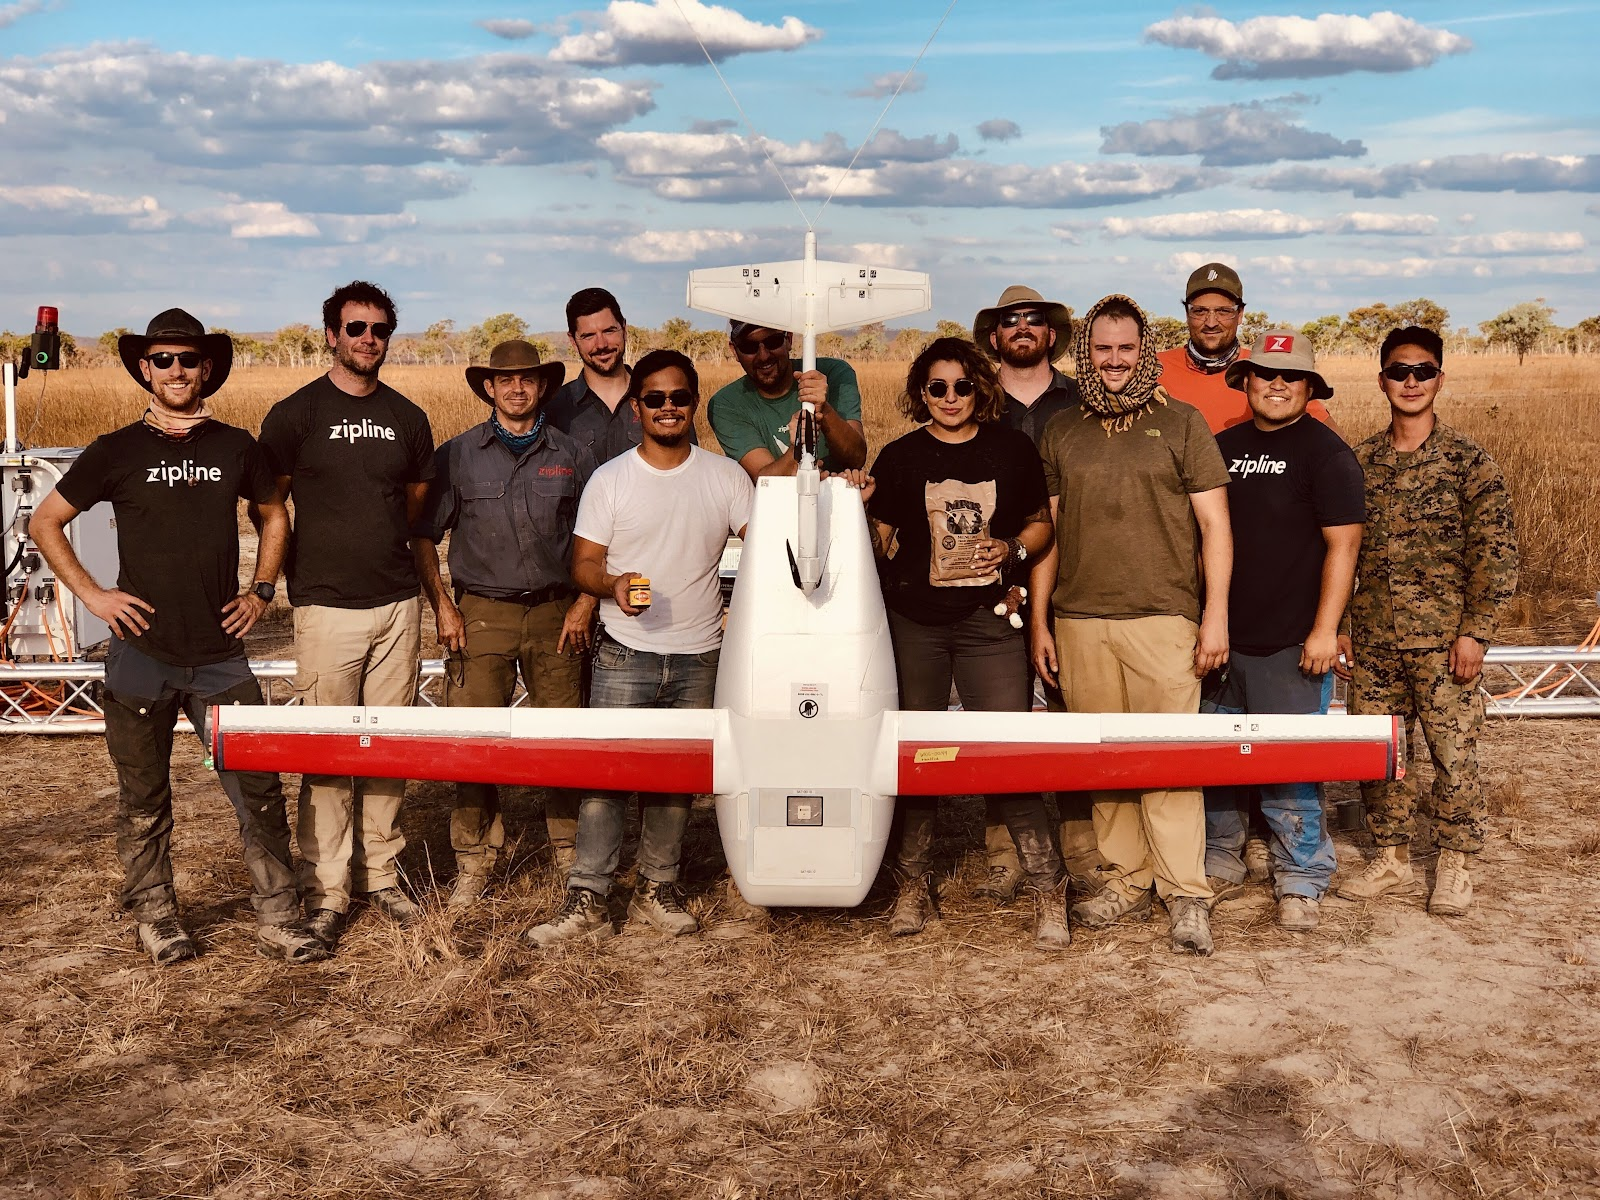 The Zipline team with one of their drones.